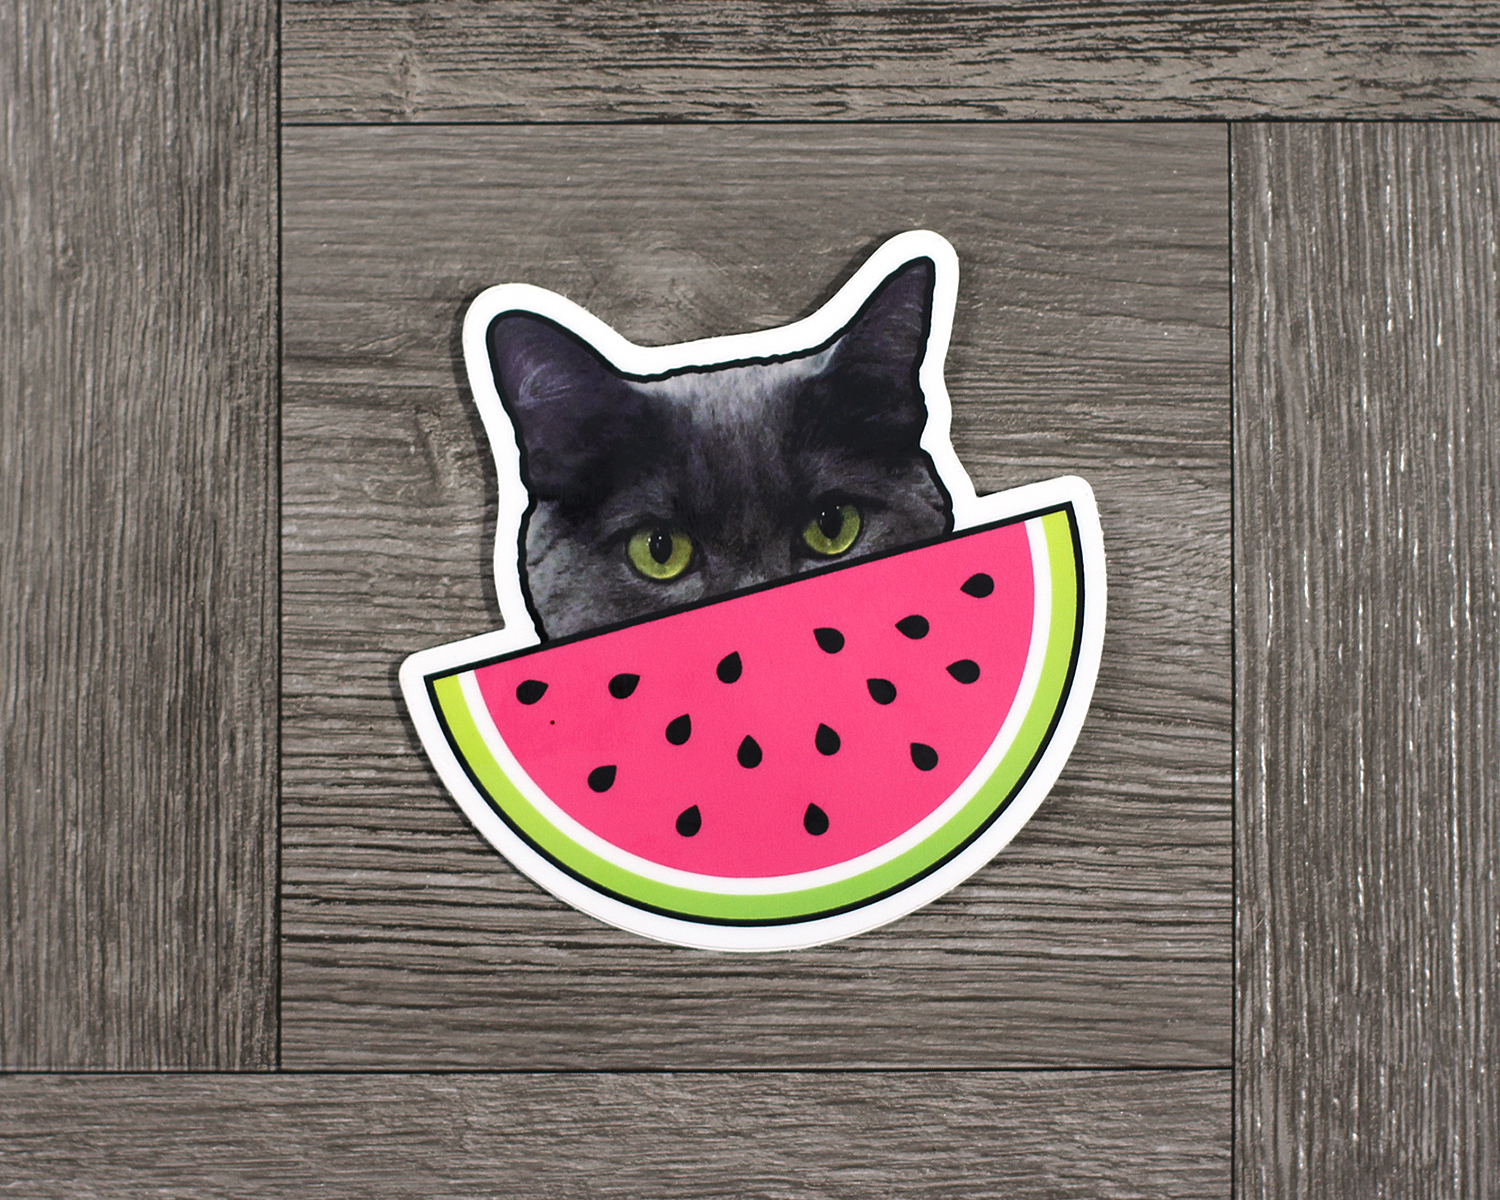 MC Watermelon Sticker Grey Tile.jpg